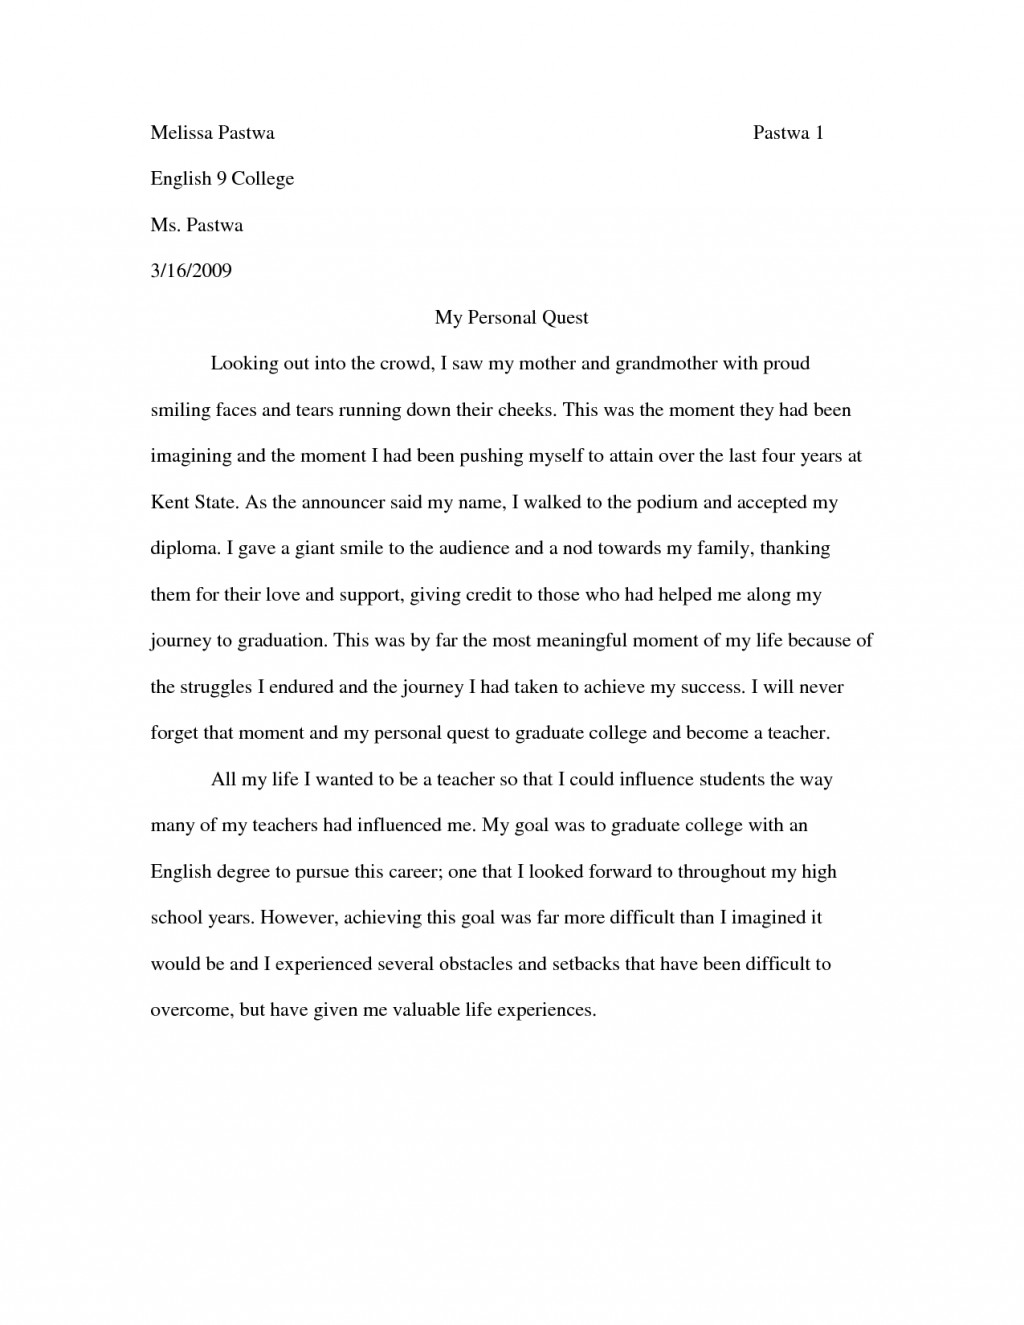 007 Essay Example Narrative Dialogue Of L Magnificent About Yourself Introduction Friendship Large